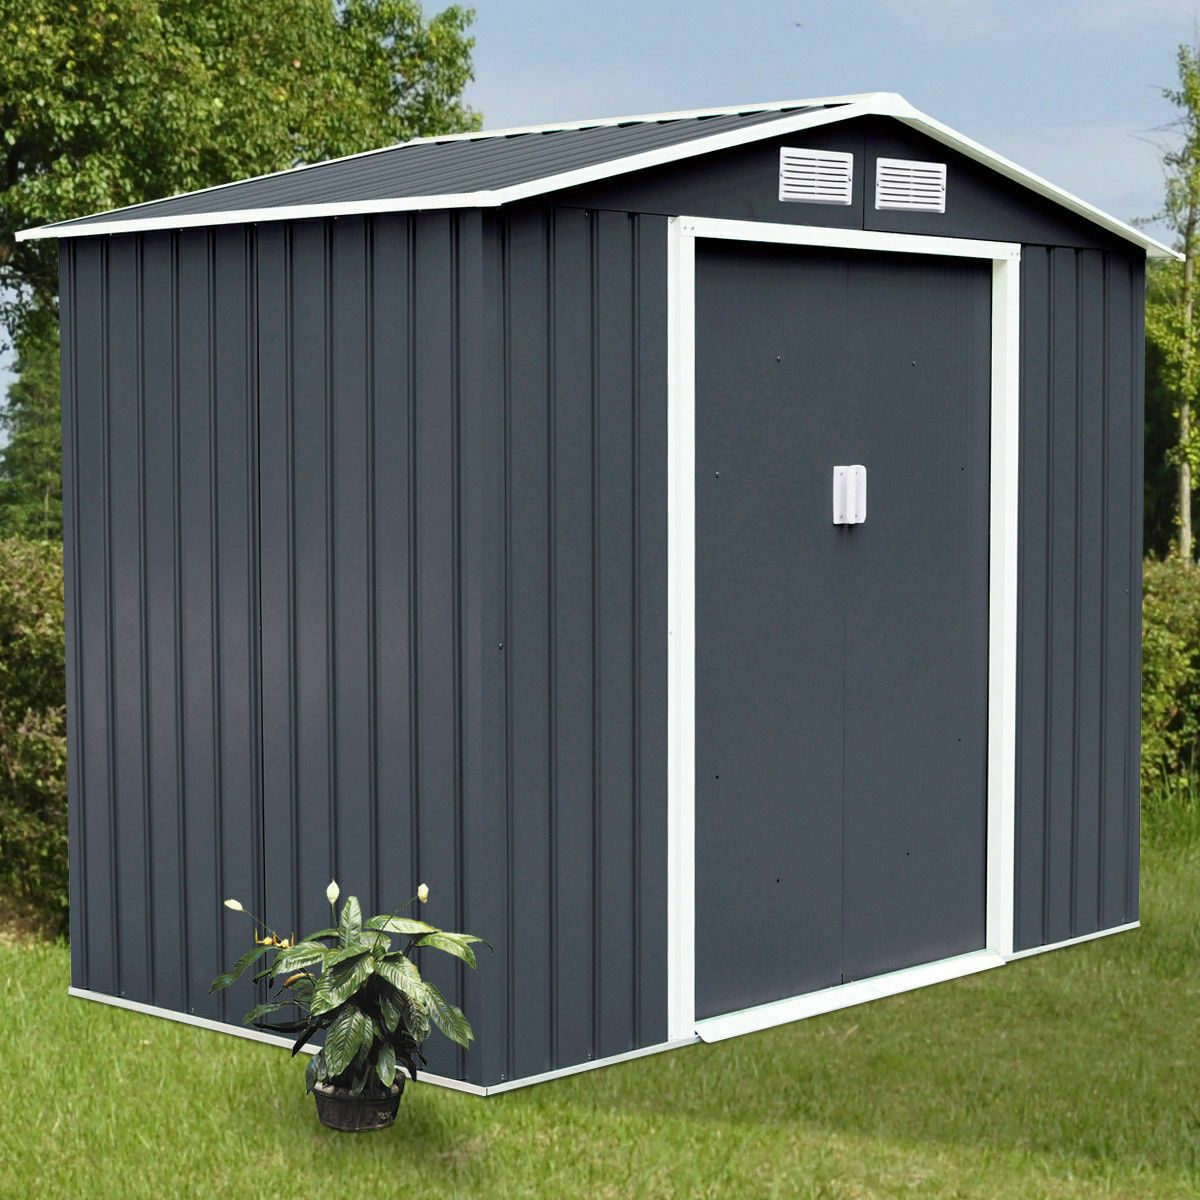 9 X 6 Outdoor Storage Shed Tool House Sliding Door Steel Garden Storage Shed Outdoor Storage Sheds Garden Tool Storage